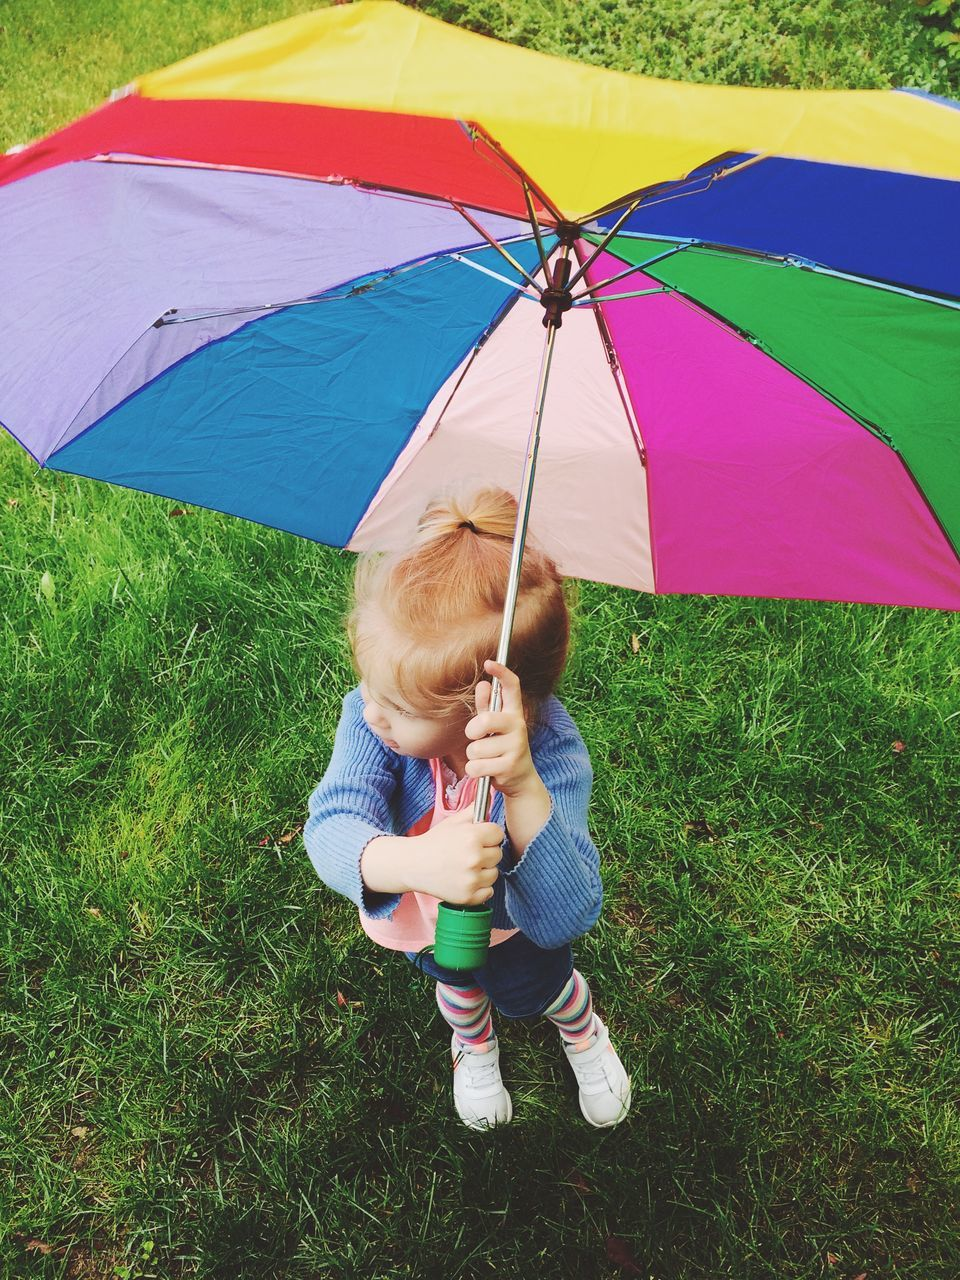 Full Length Of Cute Baby Girl With Colorful Umbrella Standing On Grassy Field At Park